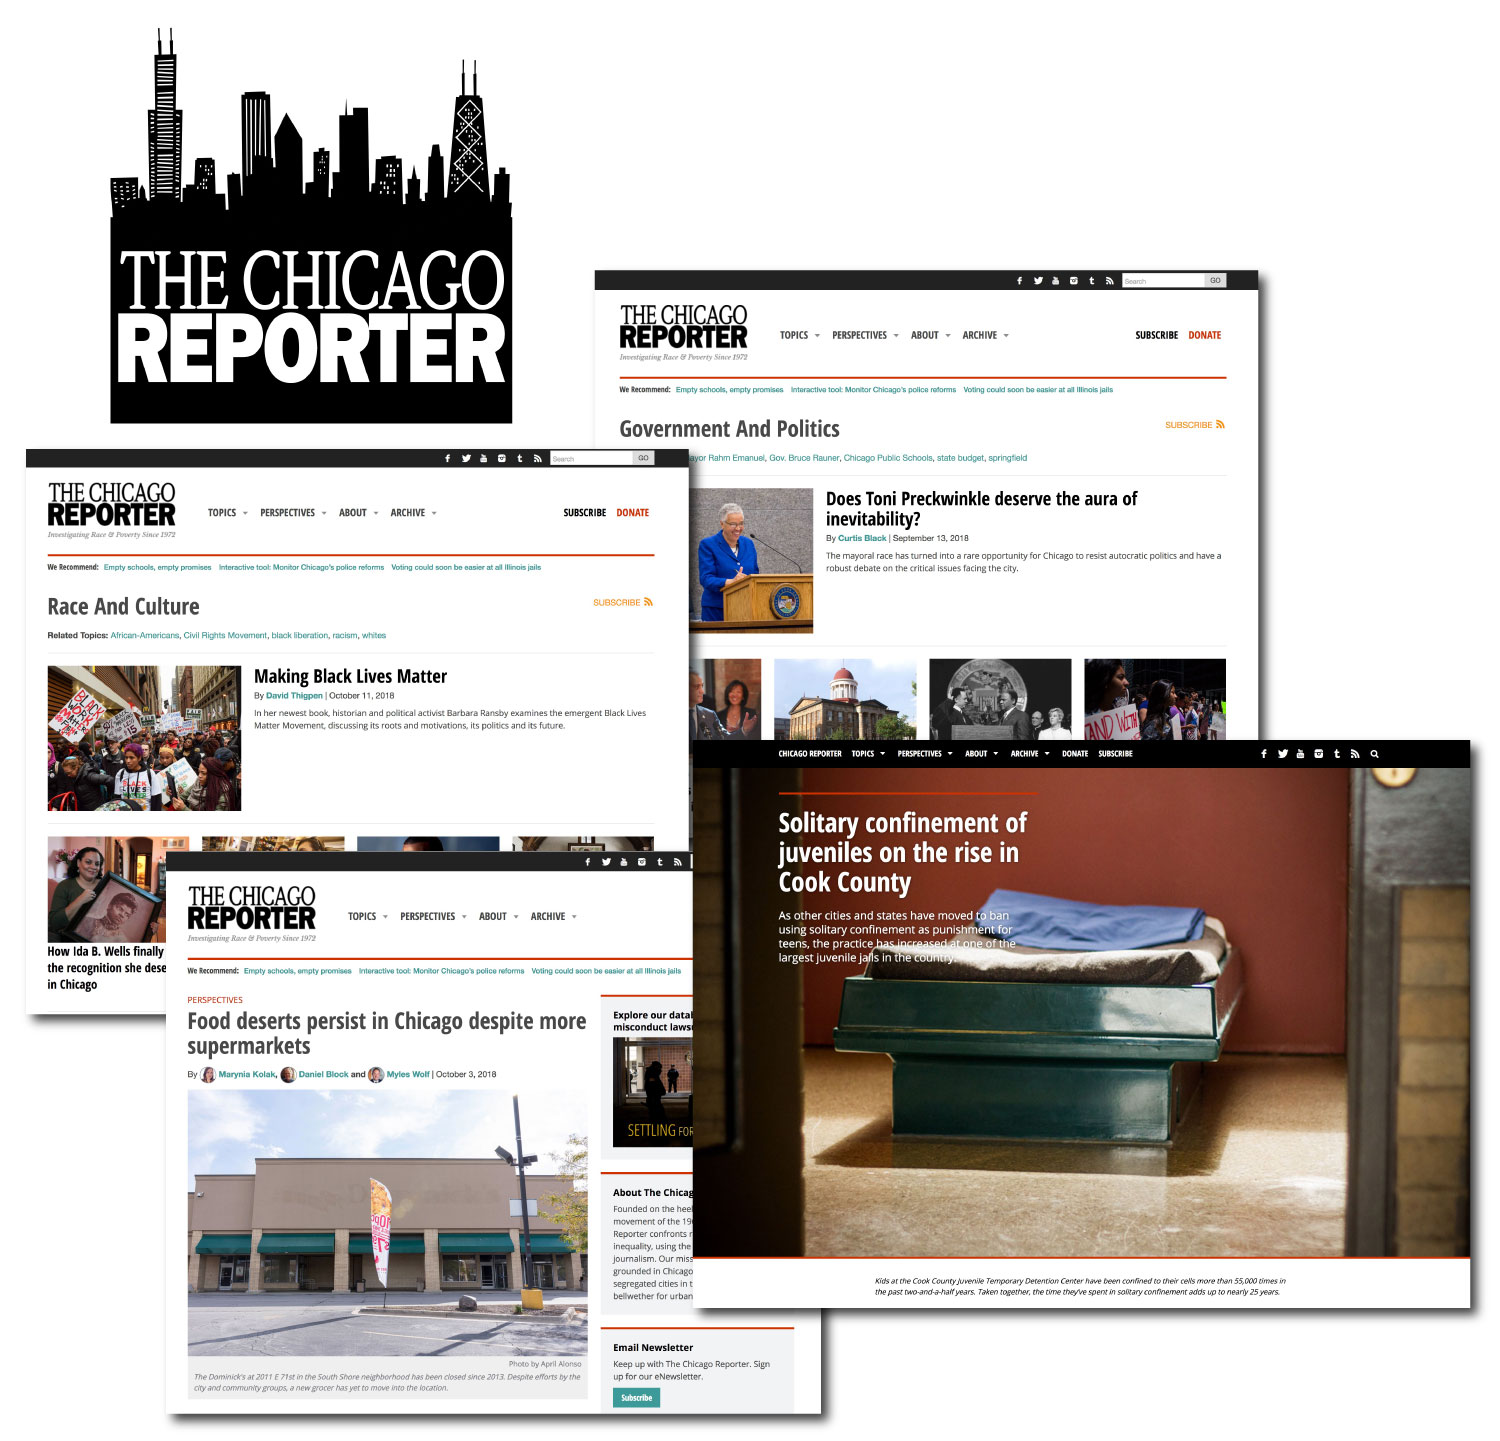 chicago-reporter-collage.jpg